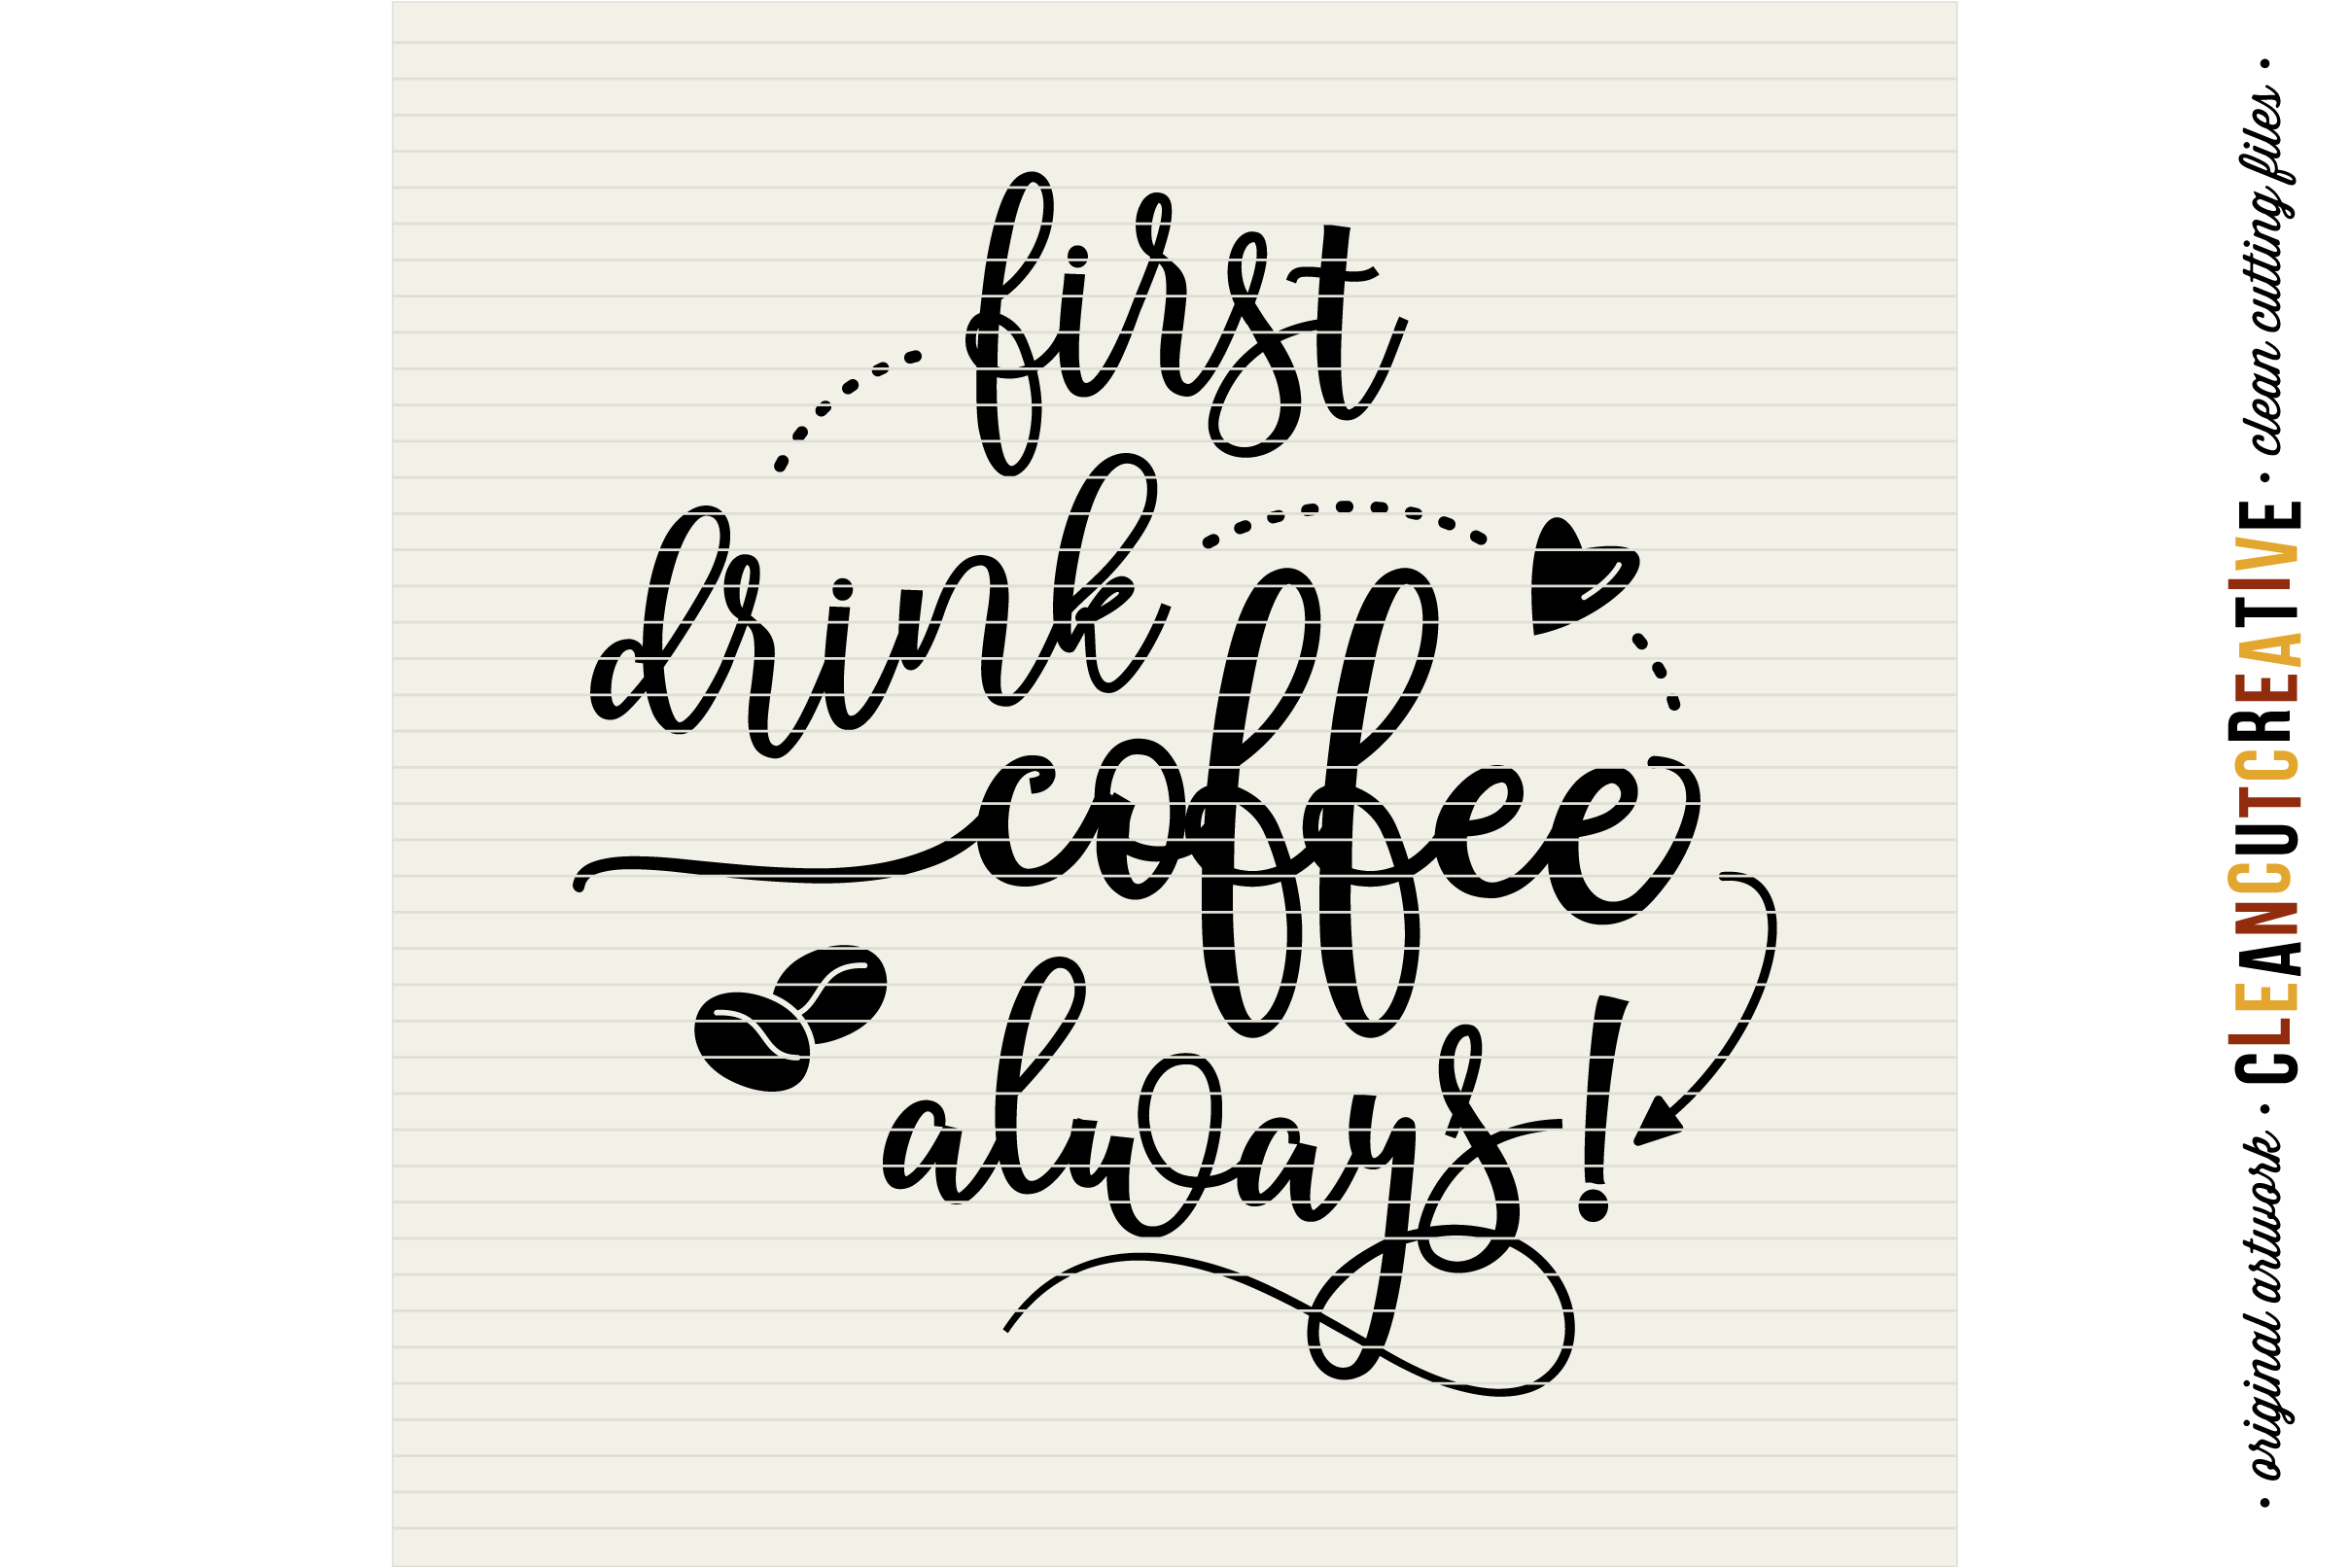 FIRST DRINK COFFEE - ALWAYS! - funny quote - SVG DXF EPS PNG- Cricut and Silhouette - clean cutting files example image 3